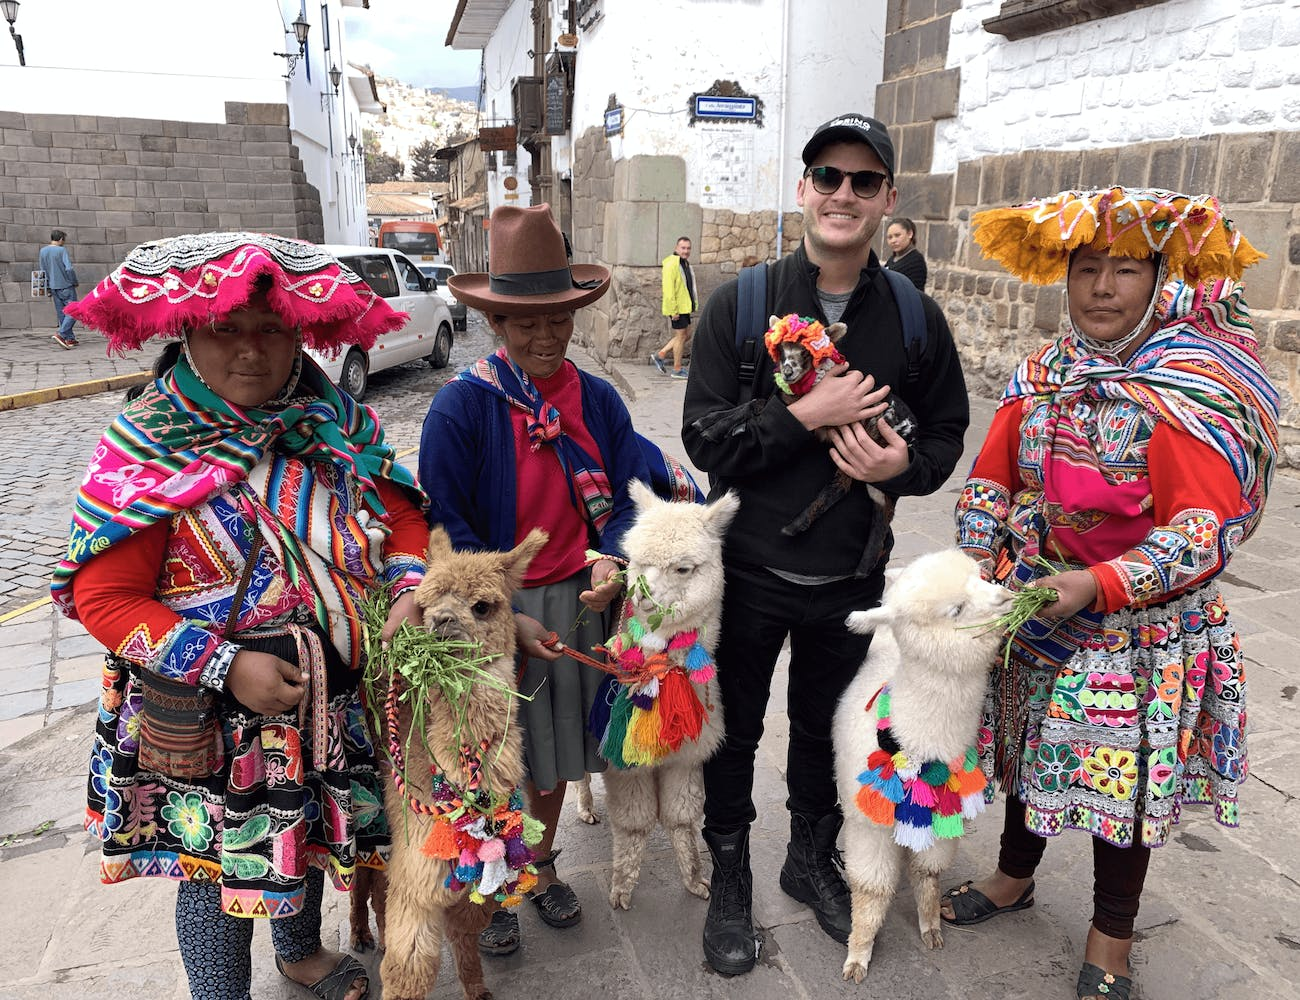 Photoshoop with Alpacas in Cusco, Peru